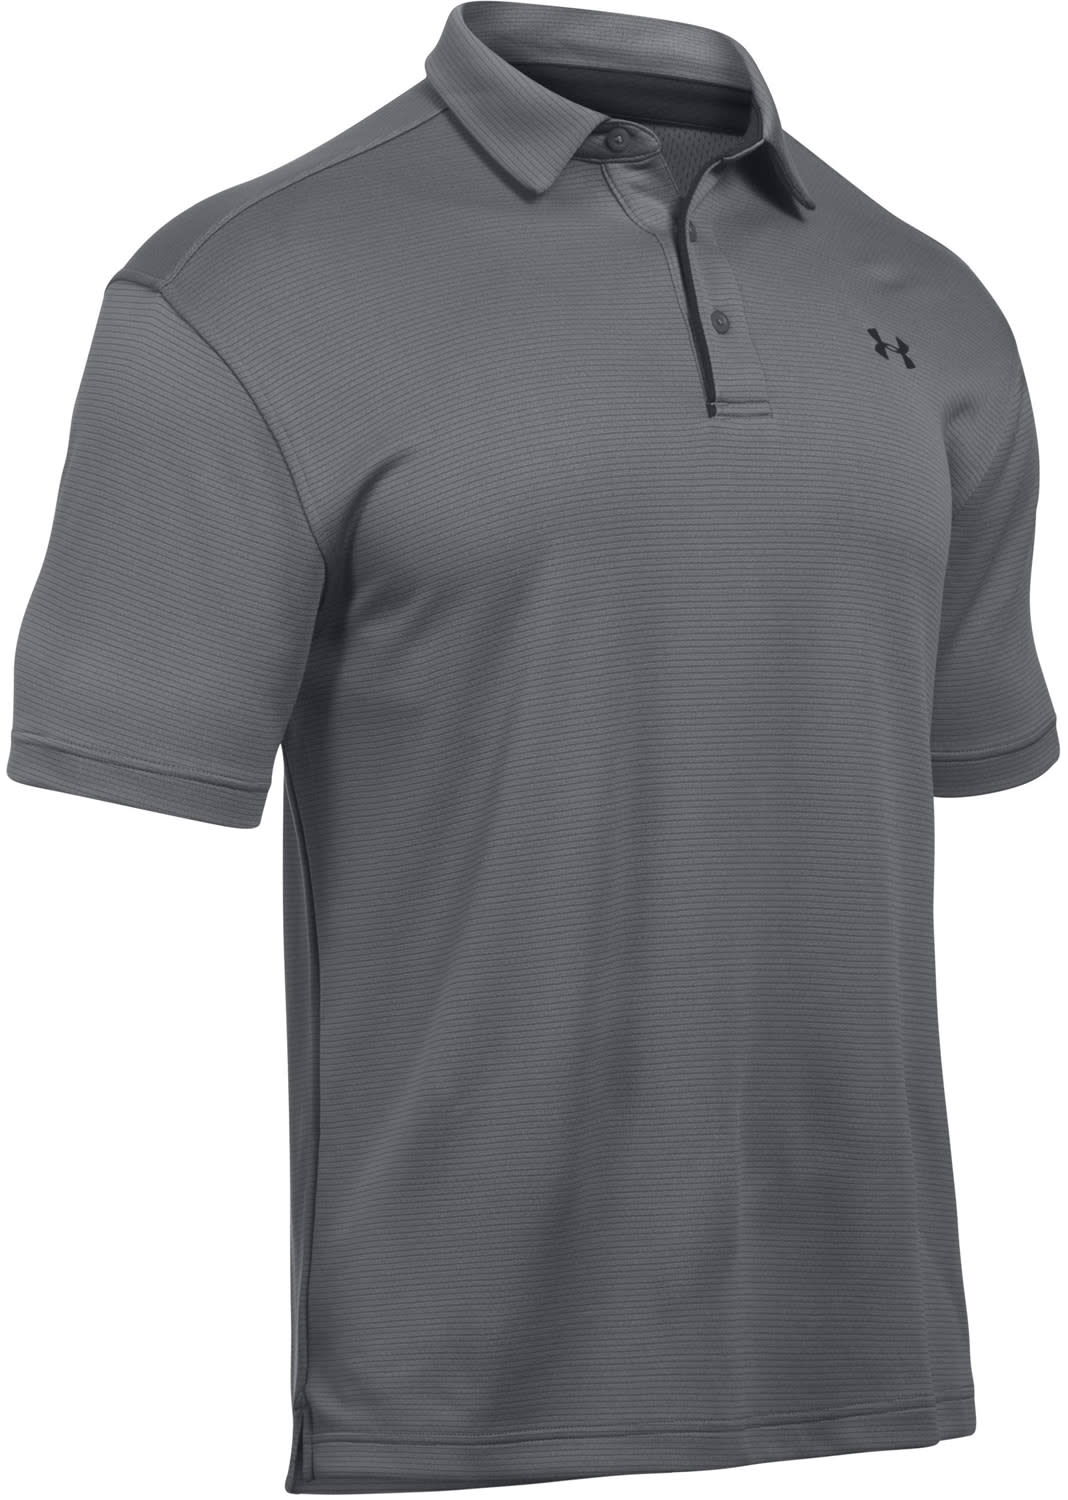 Under Armour Tech Polo ua3tec06gbb17zz-under-armour-shirts-polos